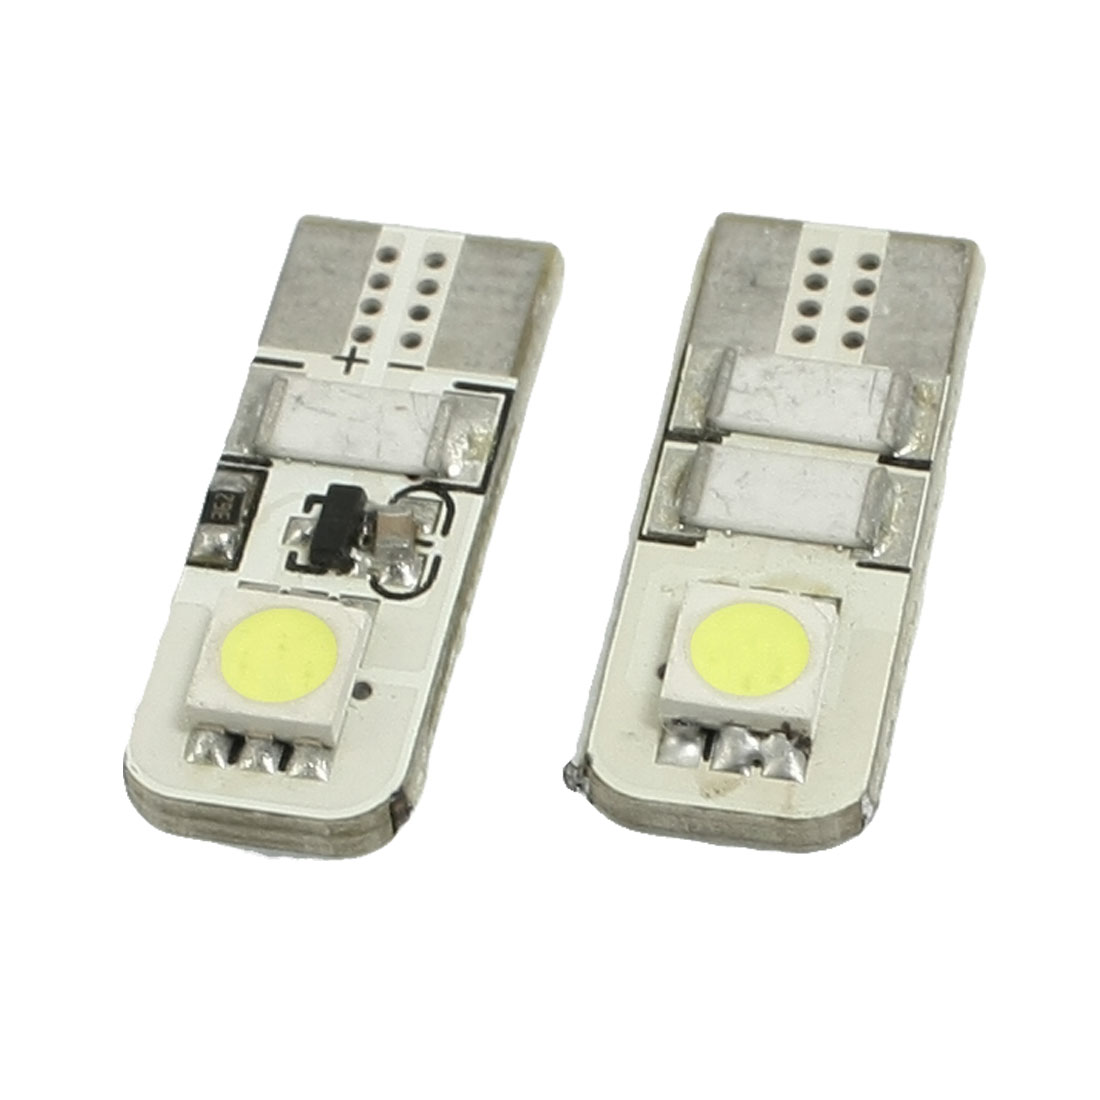 2 x Canbus Error Free 5050 SMD 2 LED T10 194 W5W Map Backup Light Lamp White